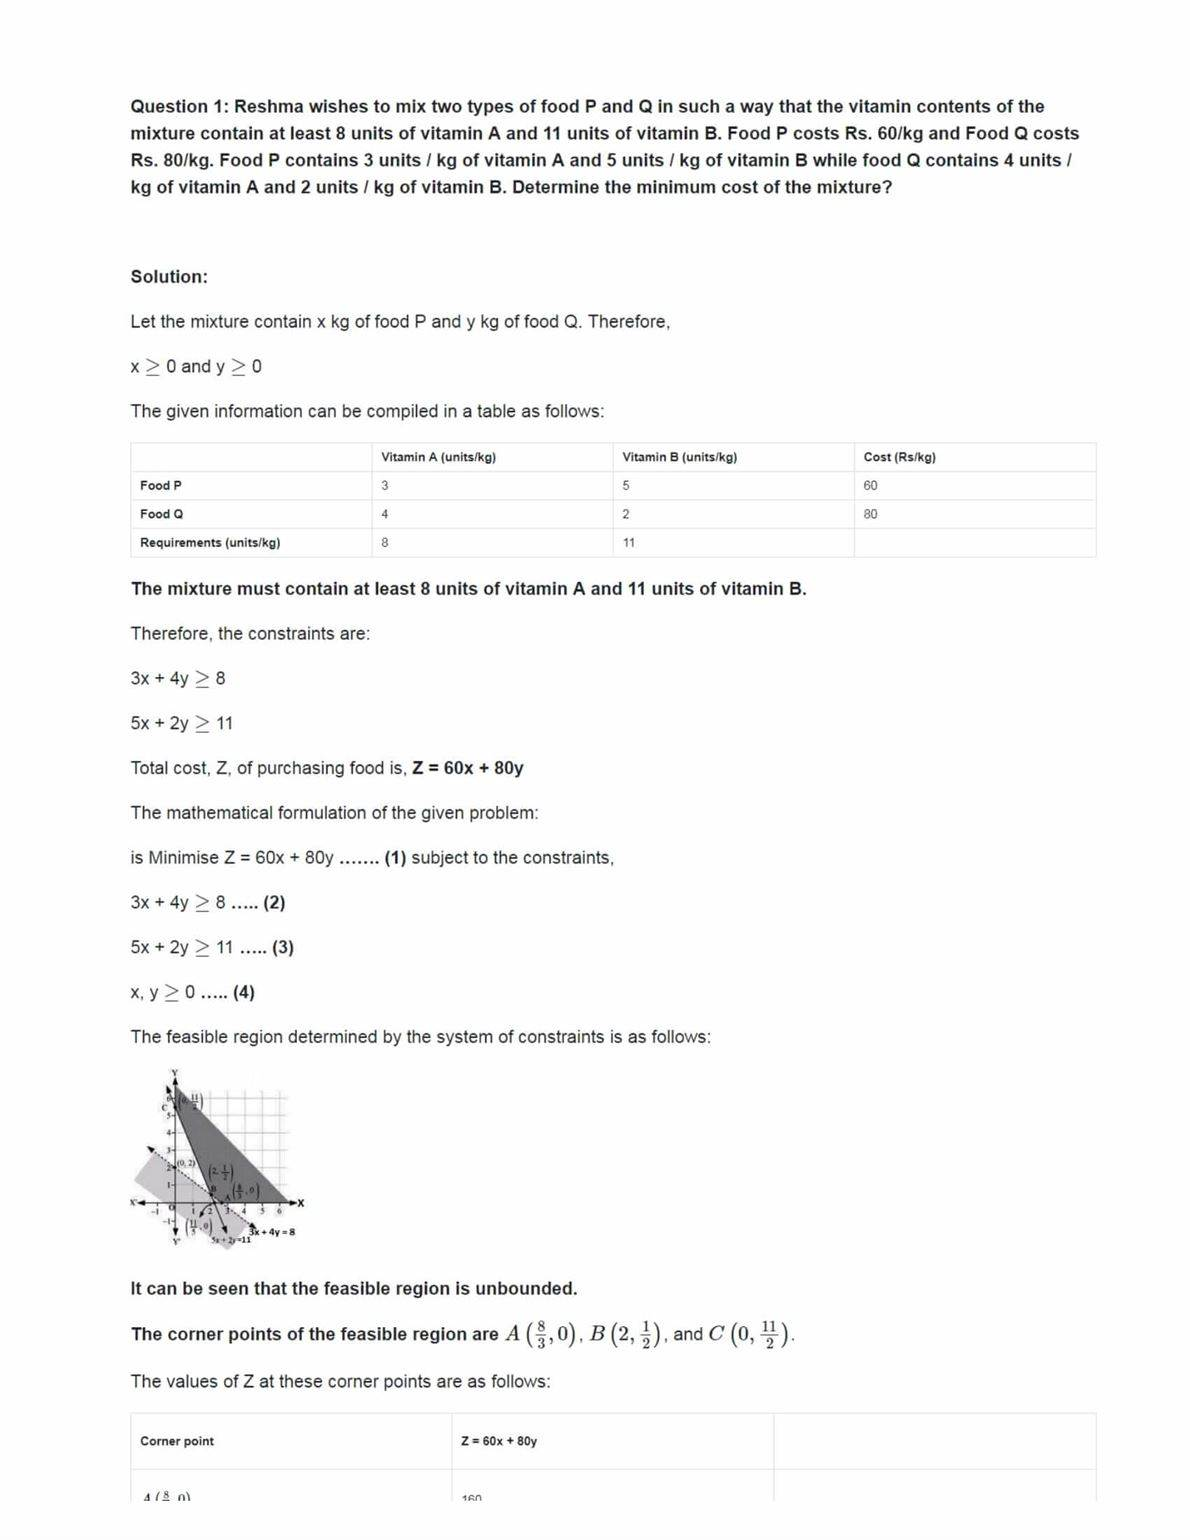 NCERT Solutions Class 12 Chemistry Chapter 12 Download PDF